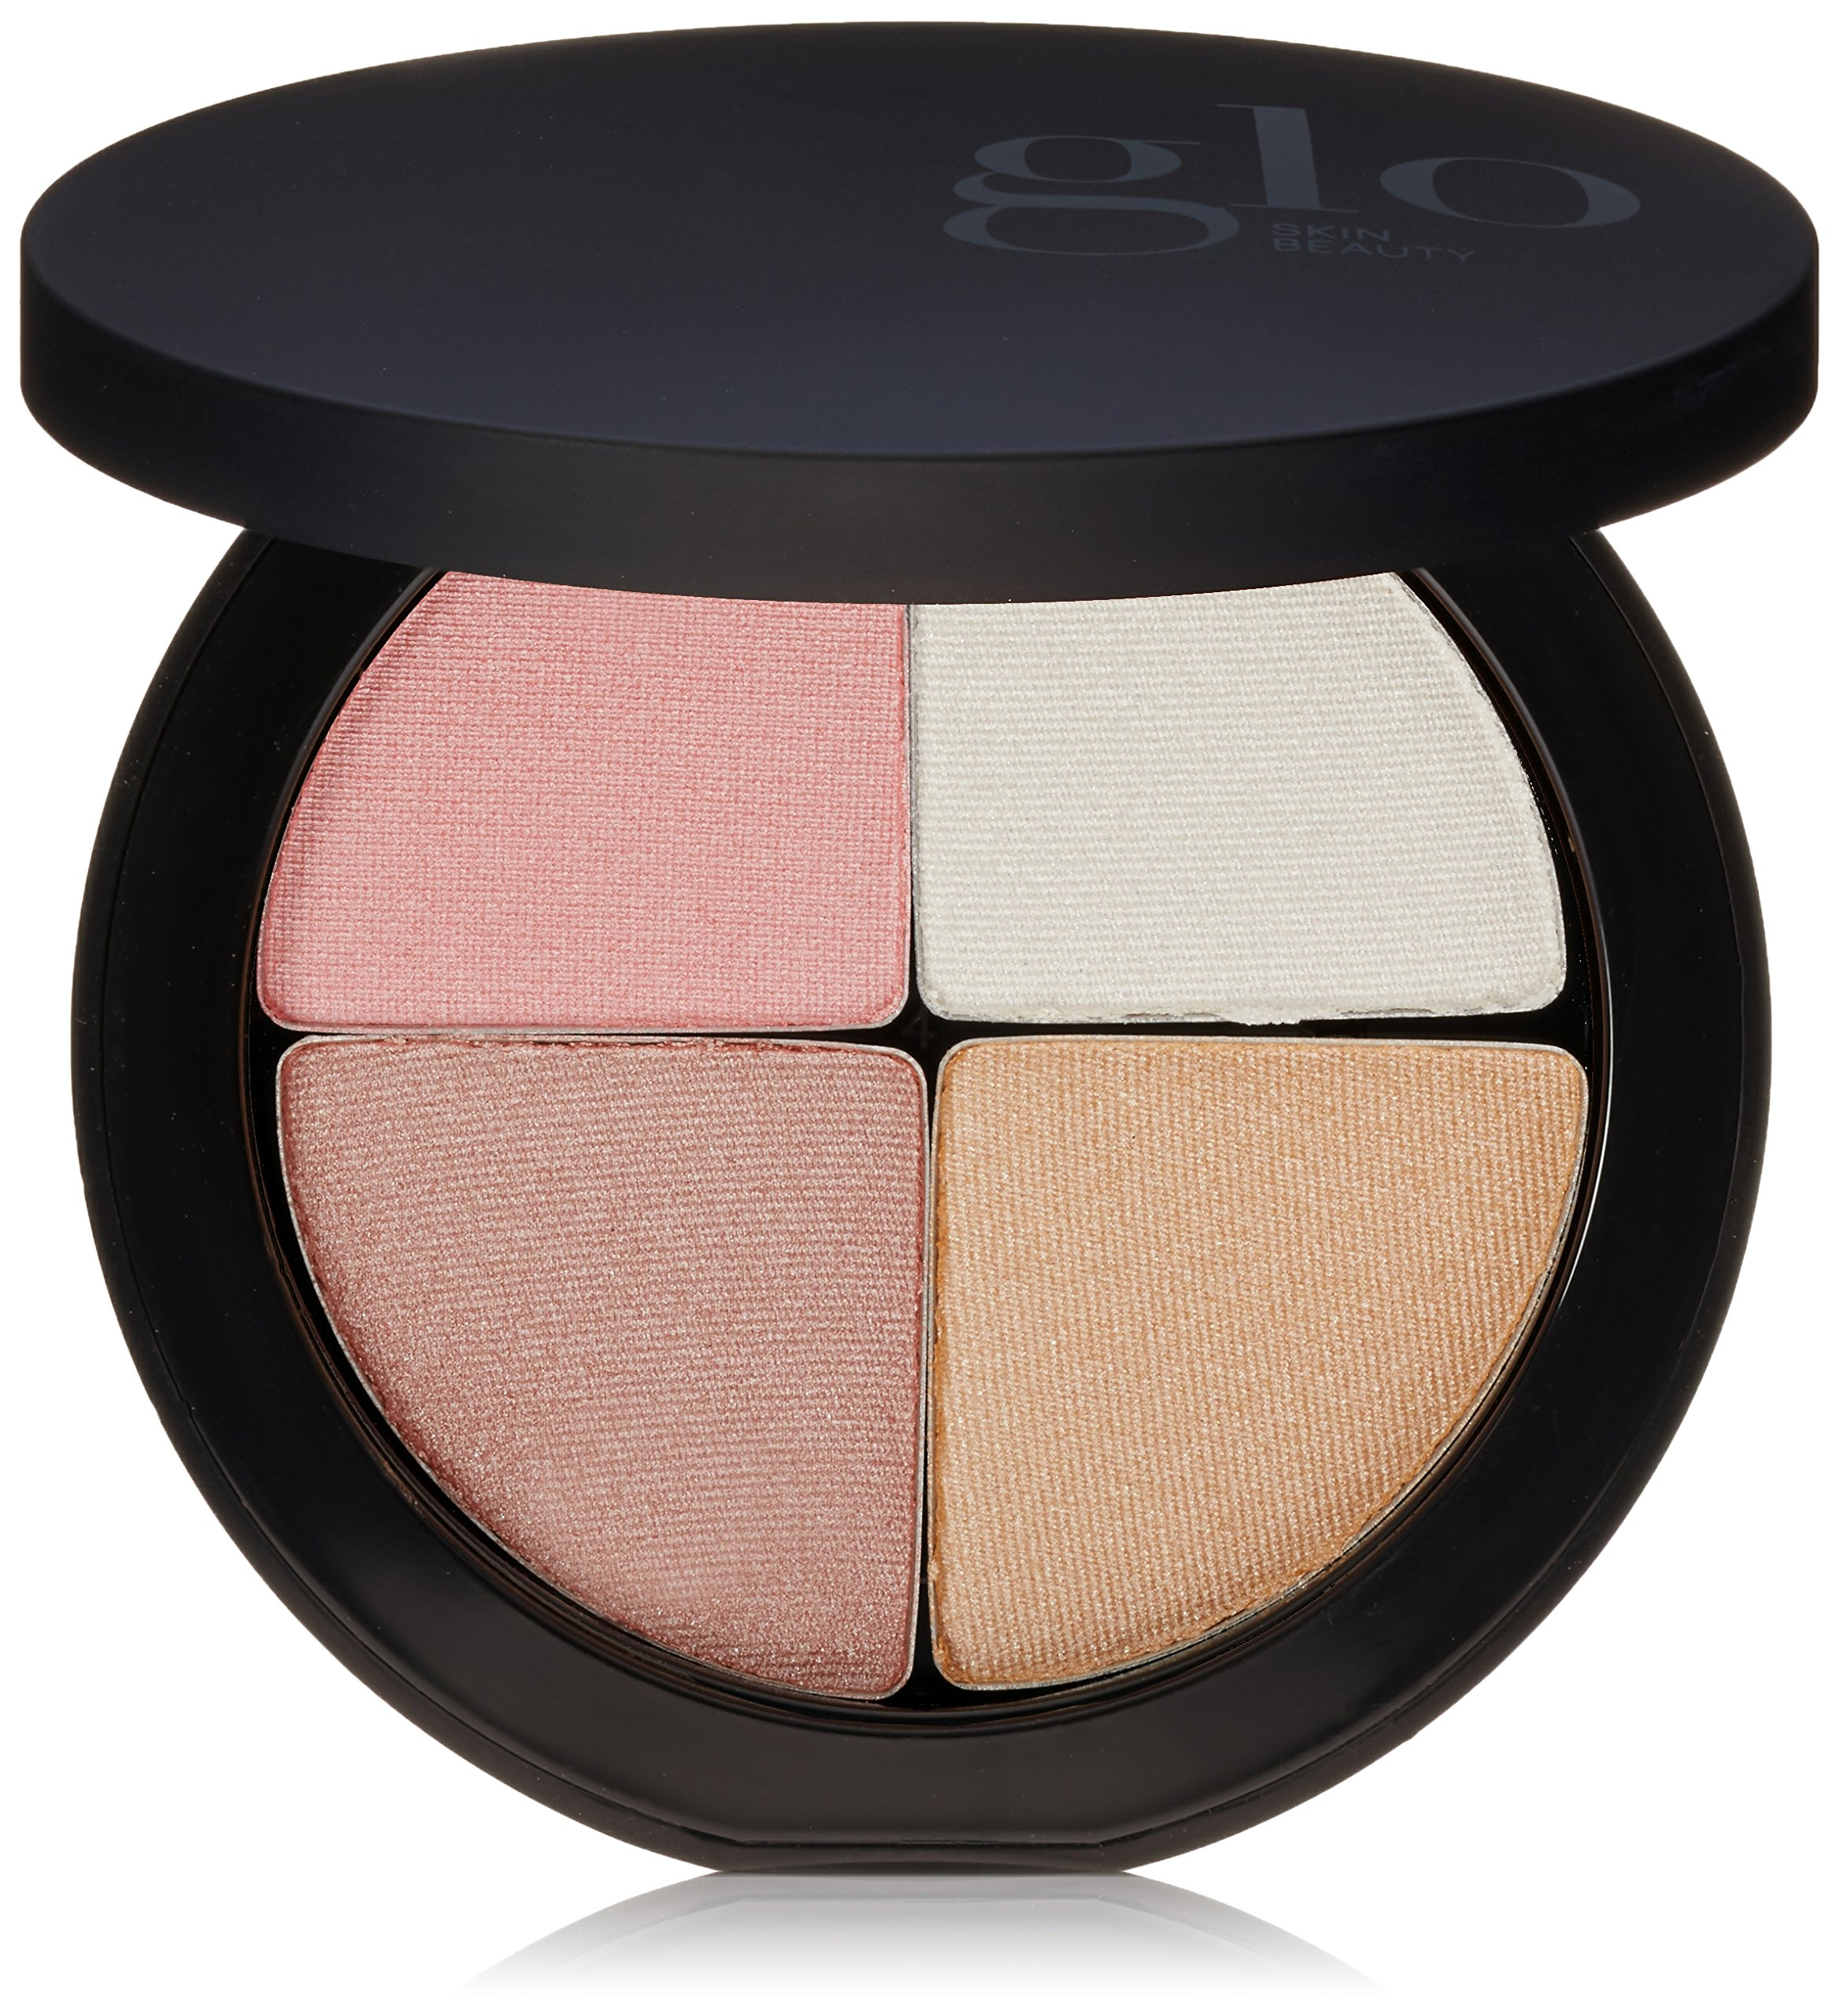 Glo Skin Beauty Shimmer Brick in Gleam | Face Highlighter Palette Set in Pinks | 4 Colors, 2 Shade Options by Glo Skin Beauty